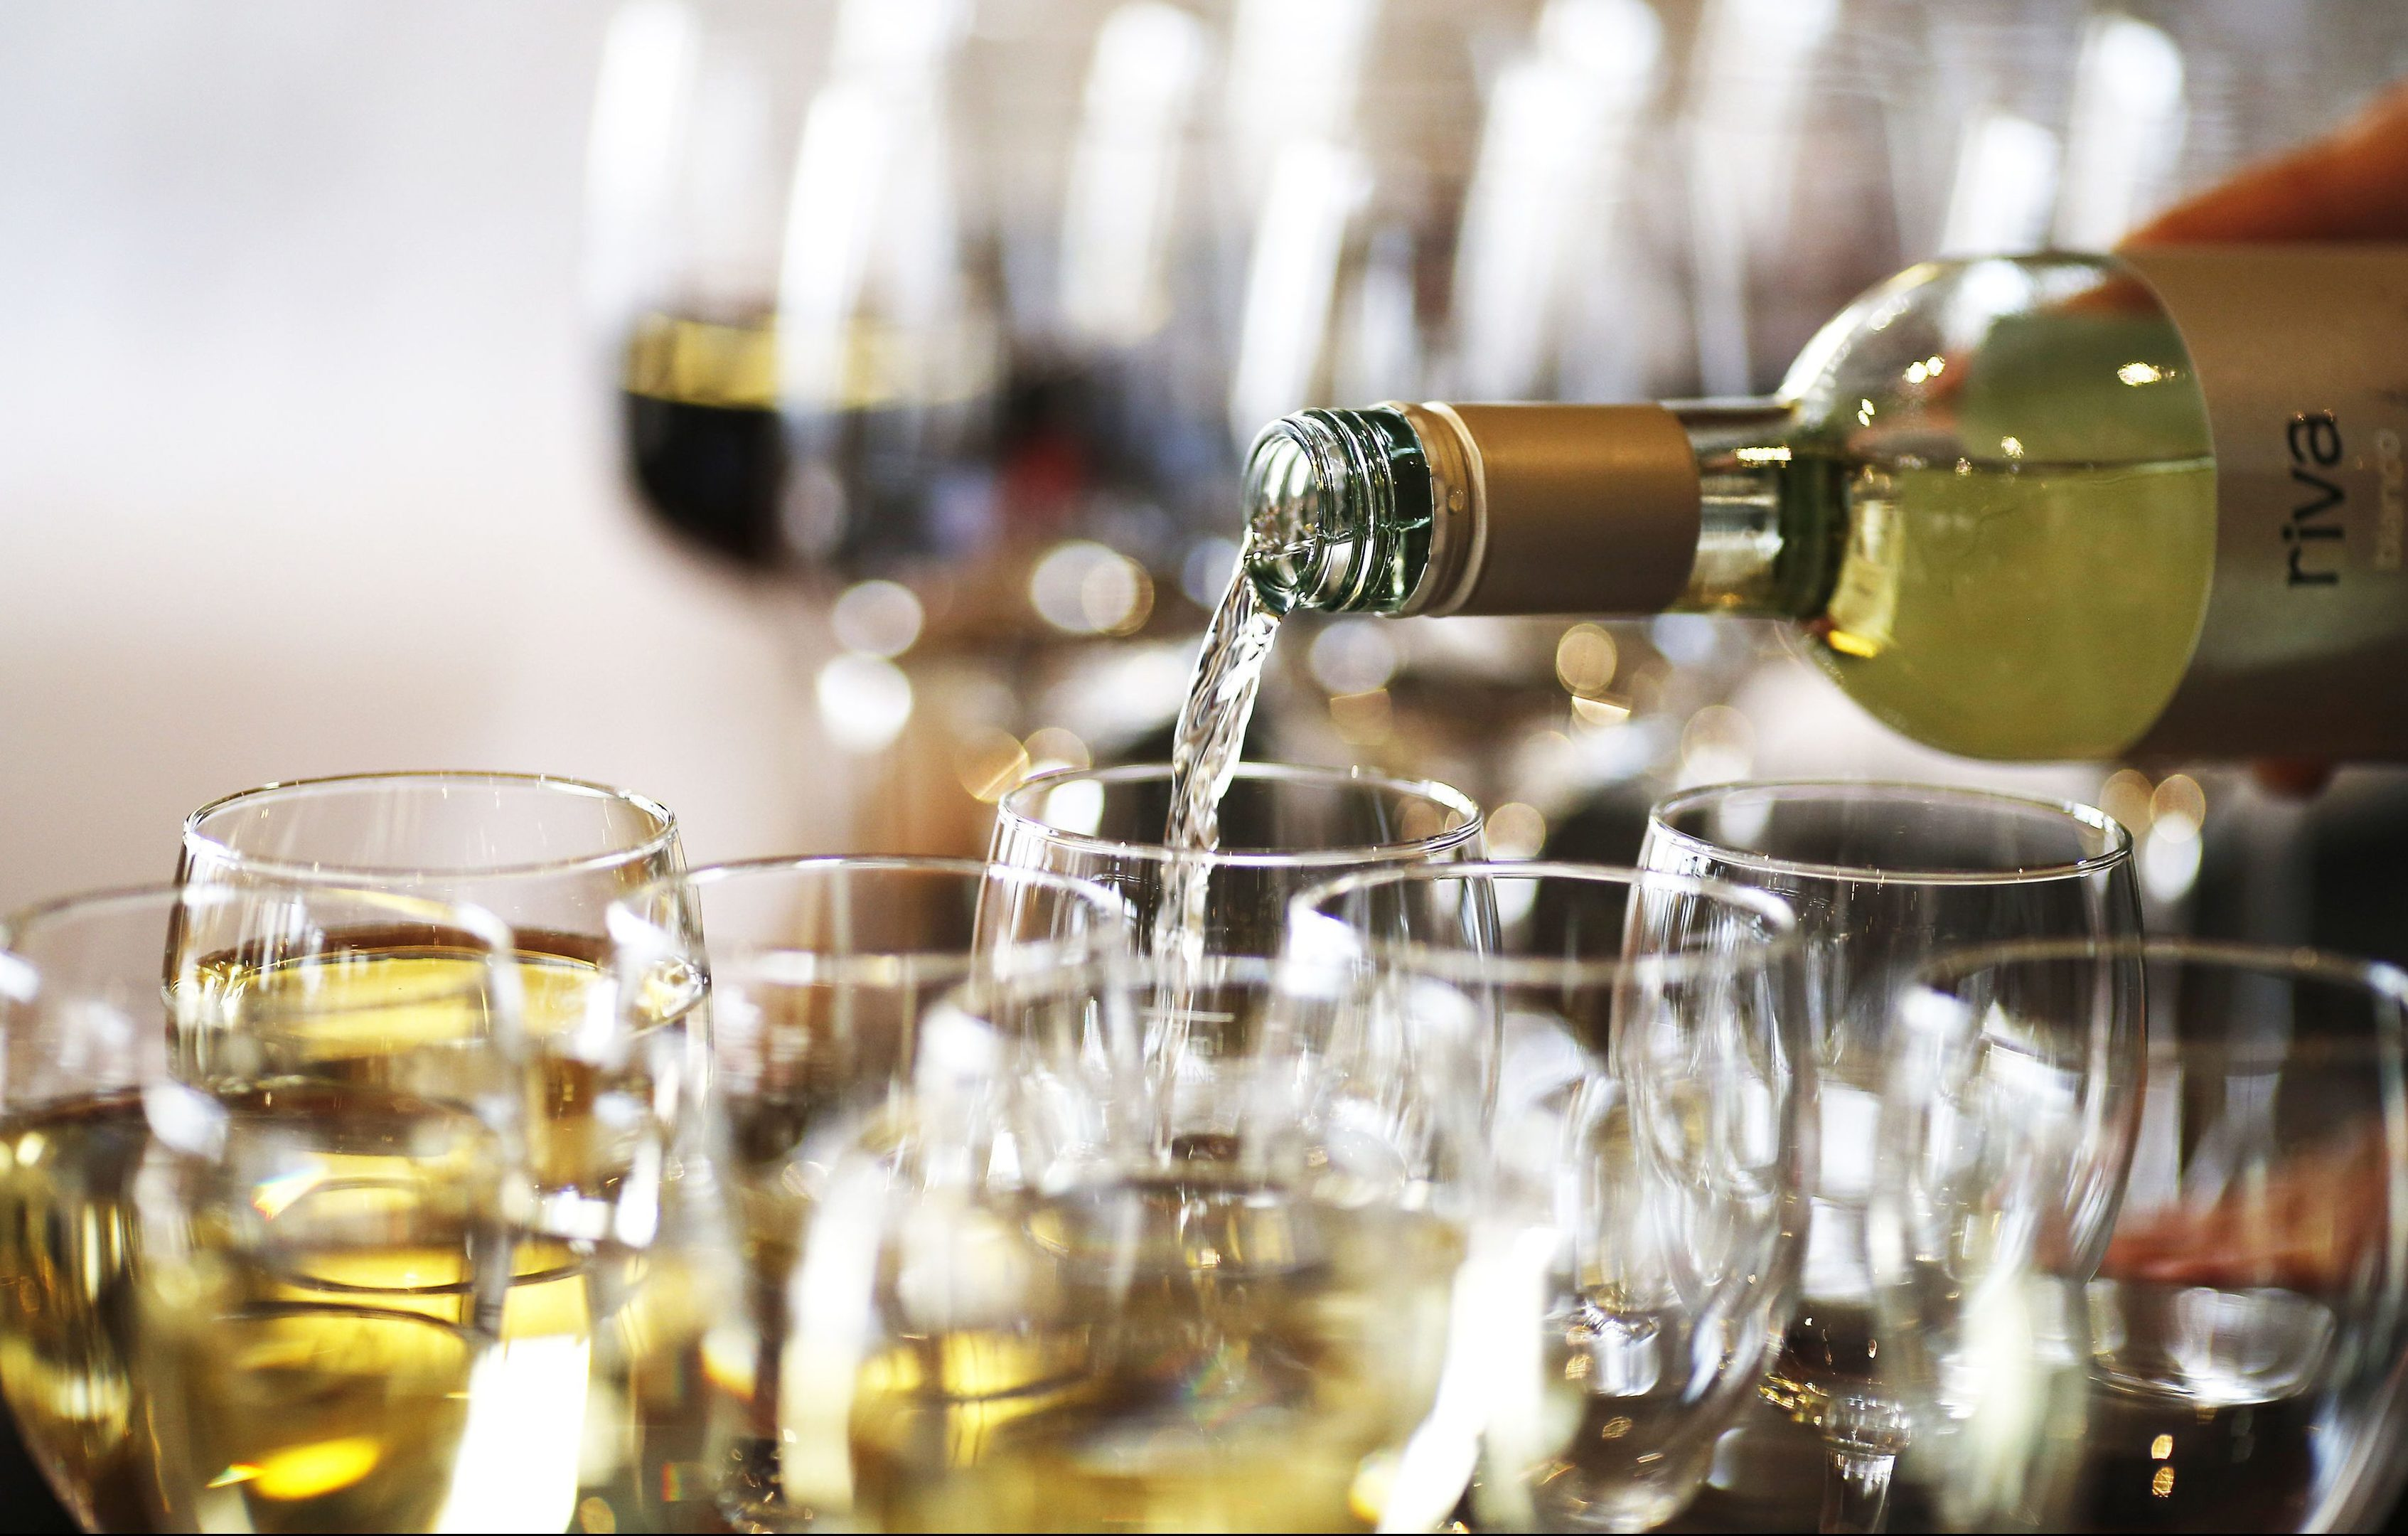 There were nearly 100,000 alcohol brief interventions carried out in Scotland.